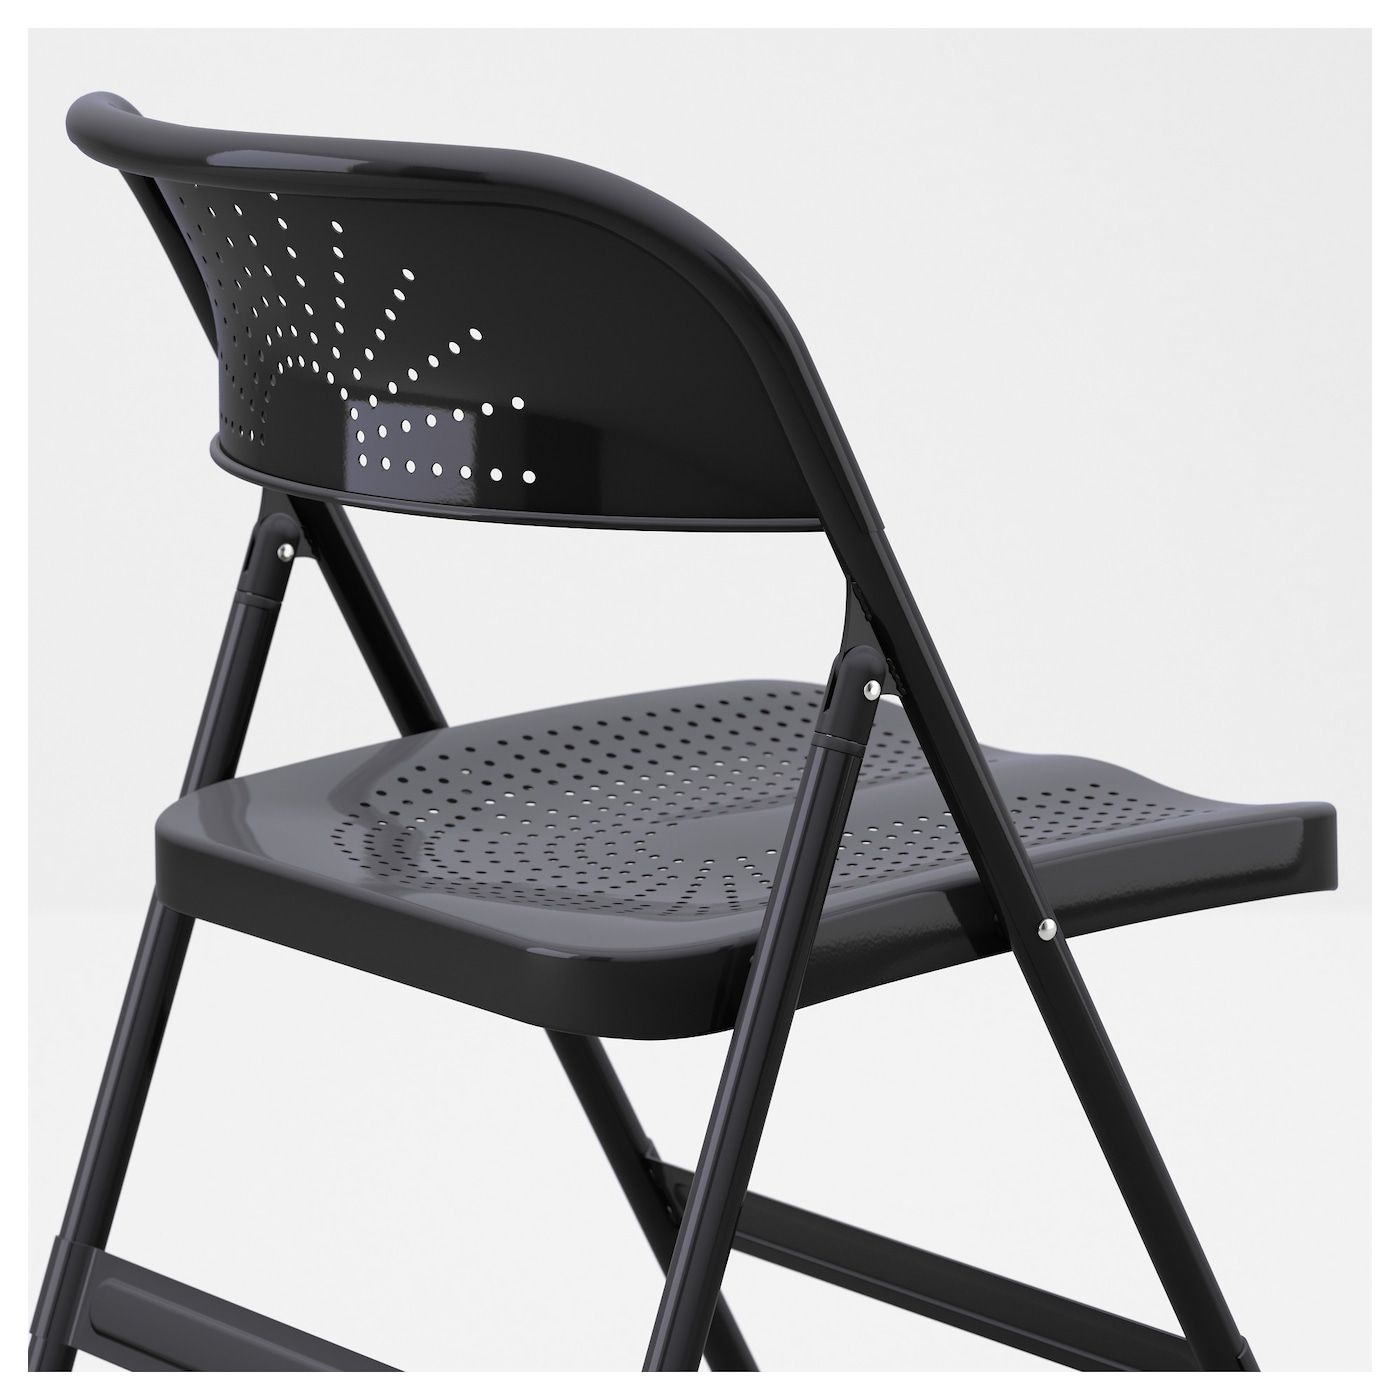 FRODE Folding chair Dark grey IKEA